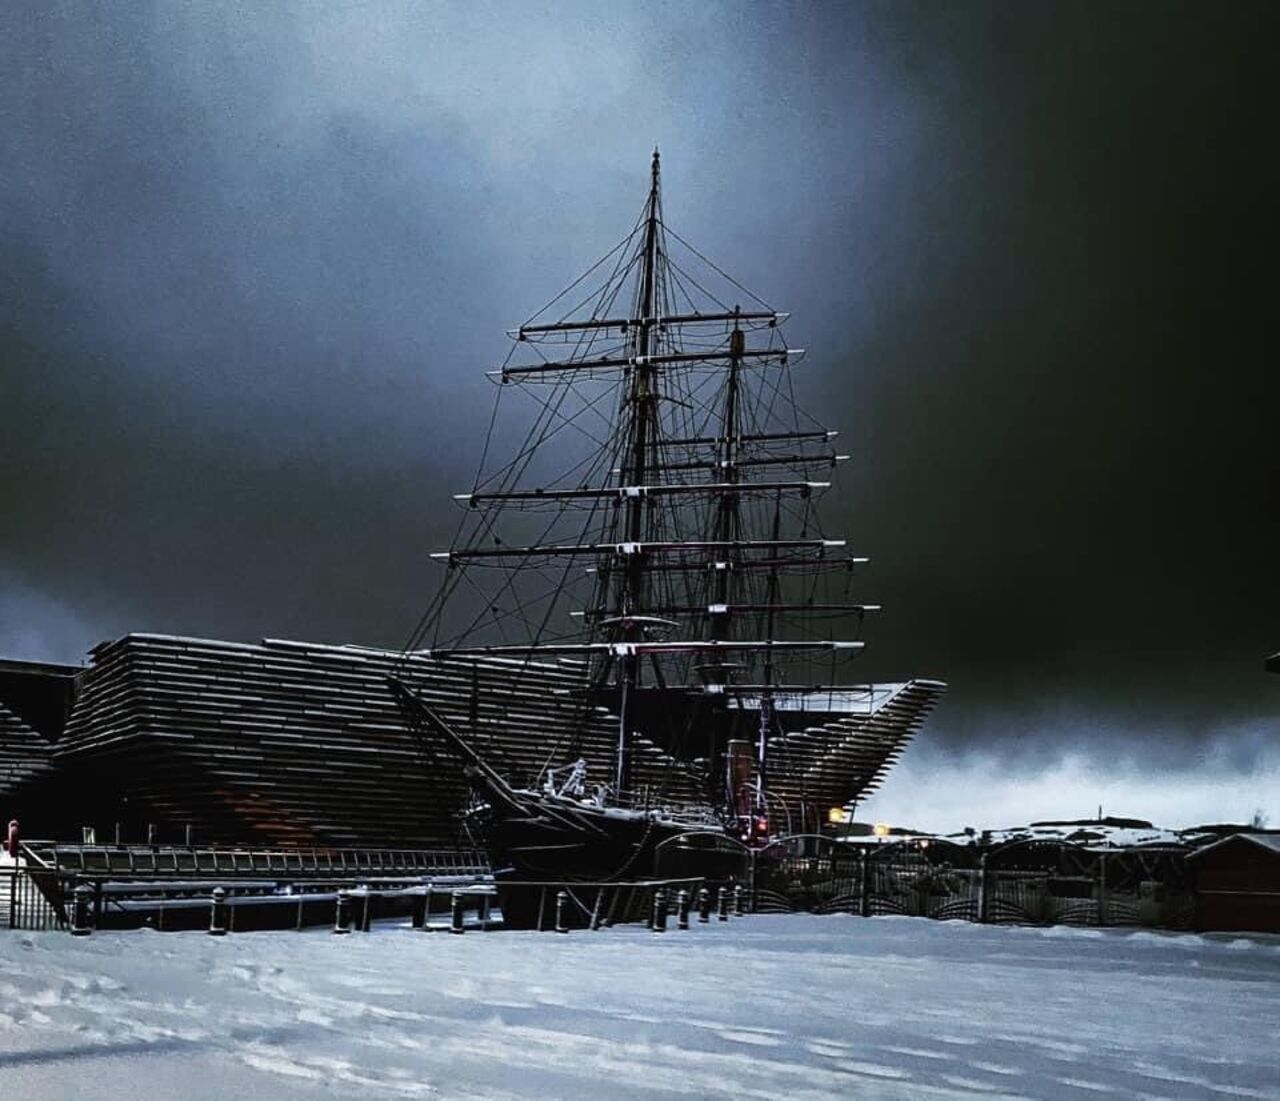 A snowy image of RRS Discovery and V&A Dundee